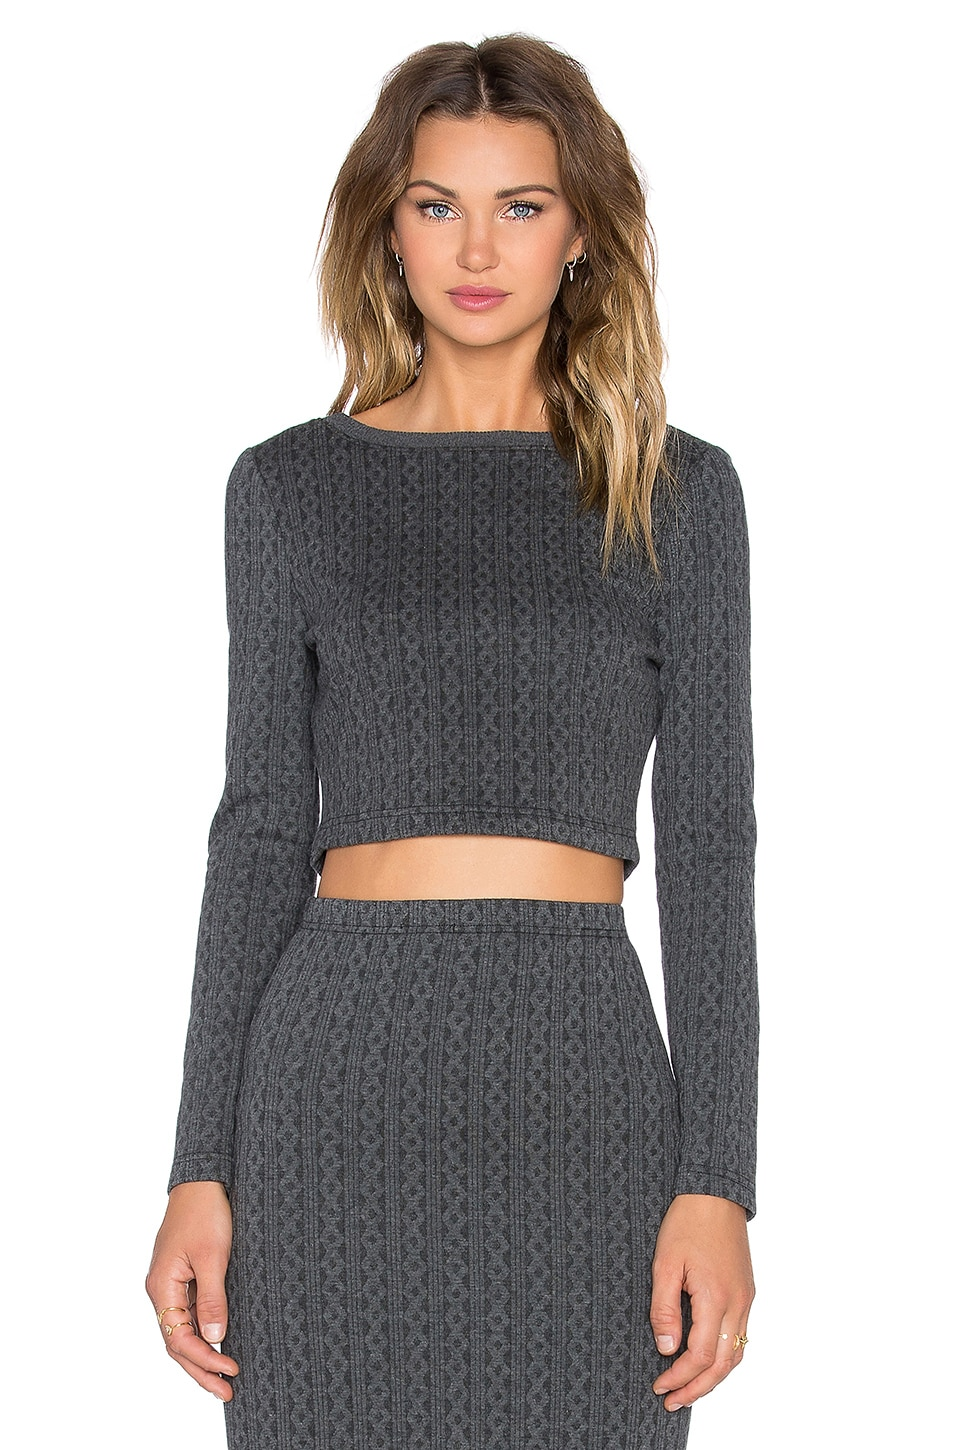 BB Dakota Jack by BB Dakota Crop Top in Charcoal Grey